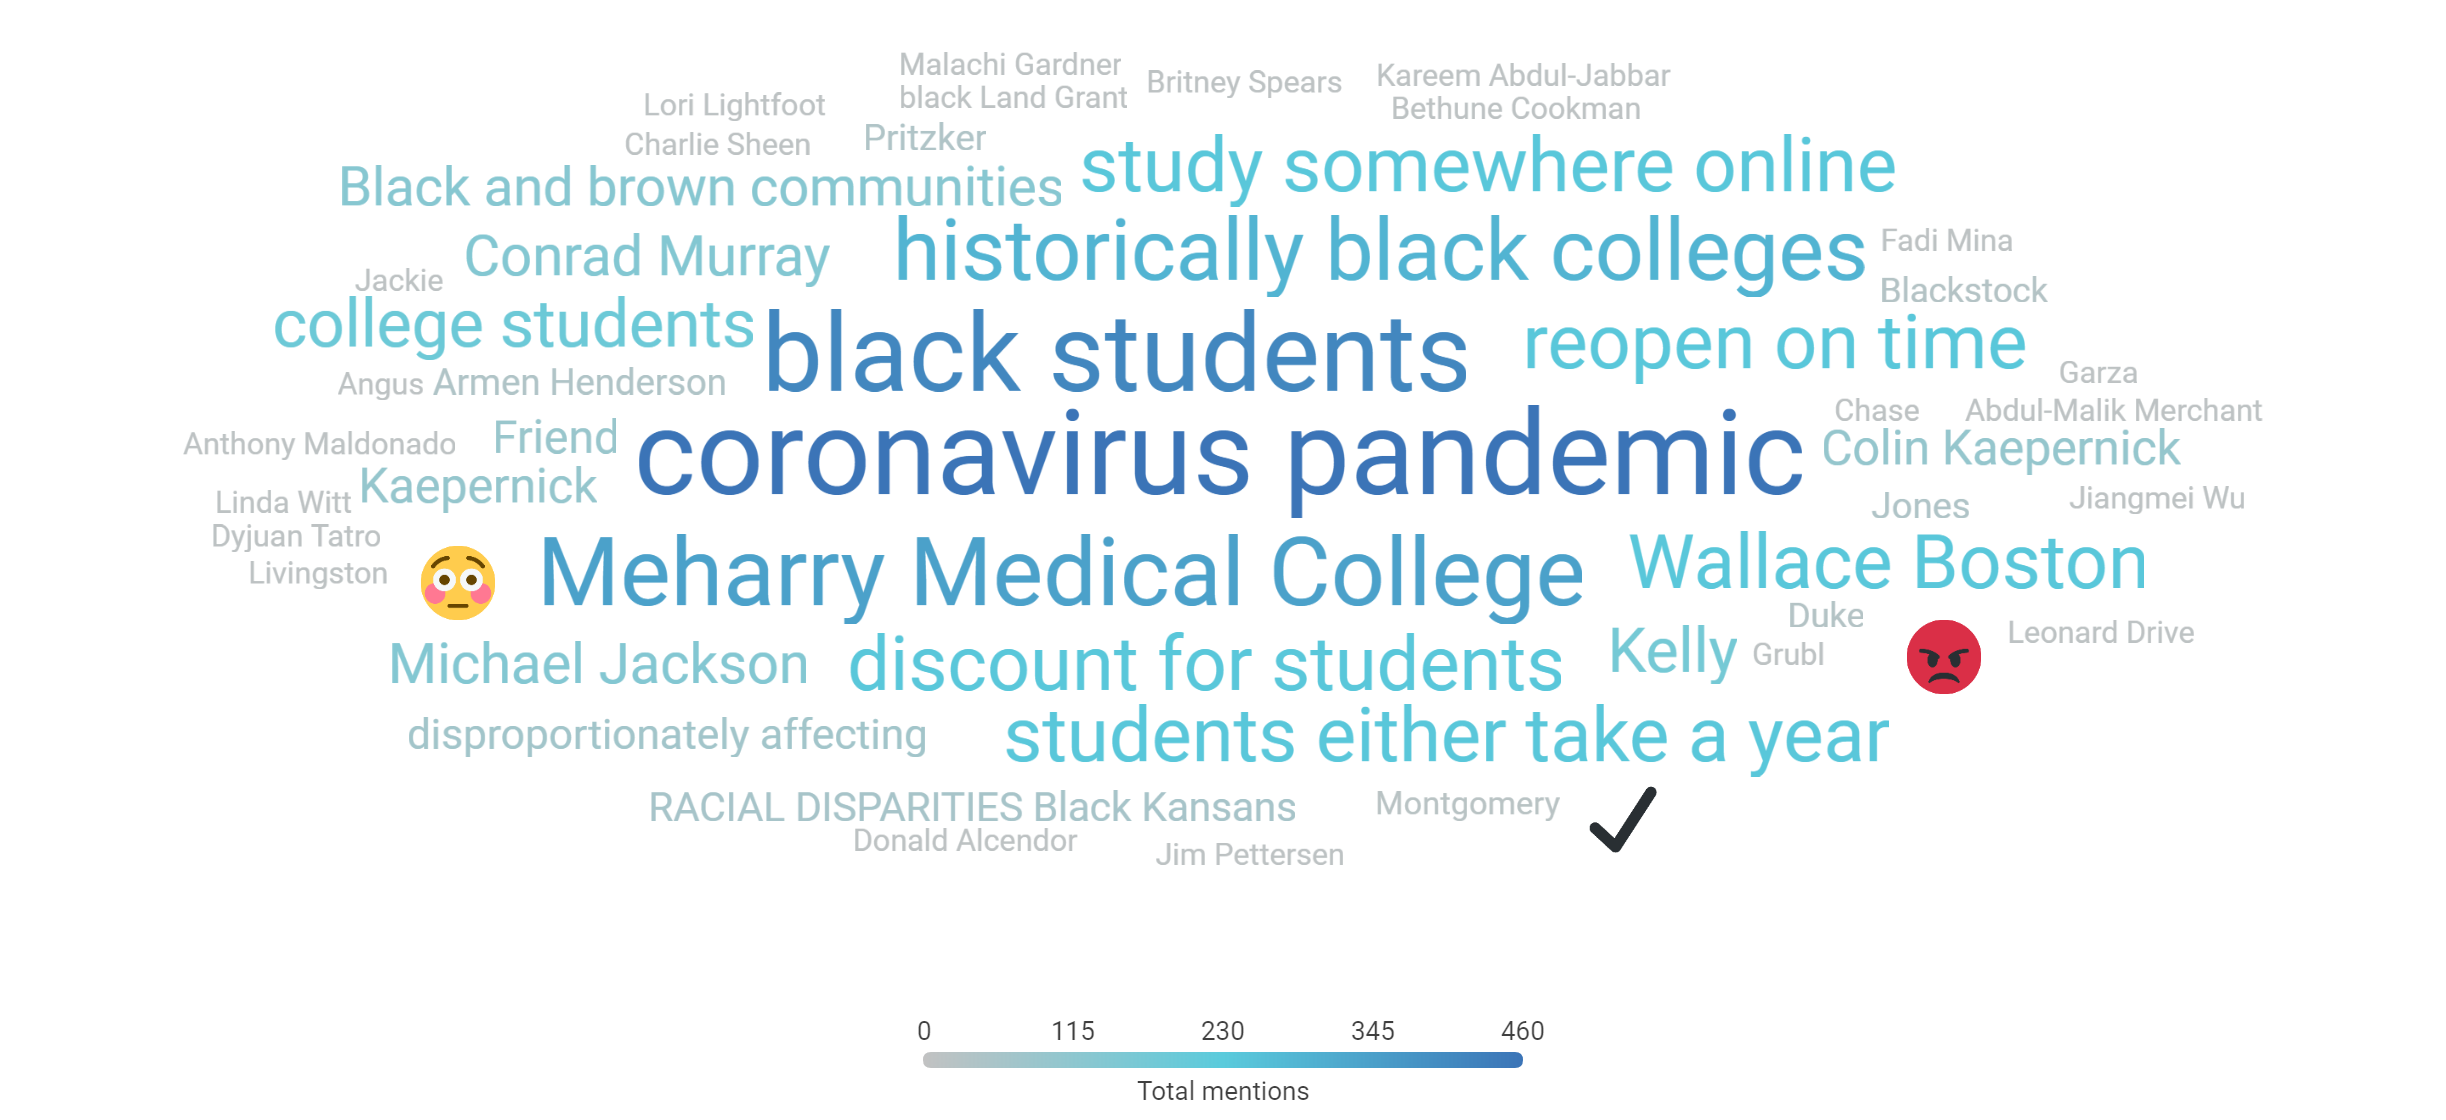 Word cloud showing top 50 topics higher ed-focused black mentions